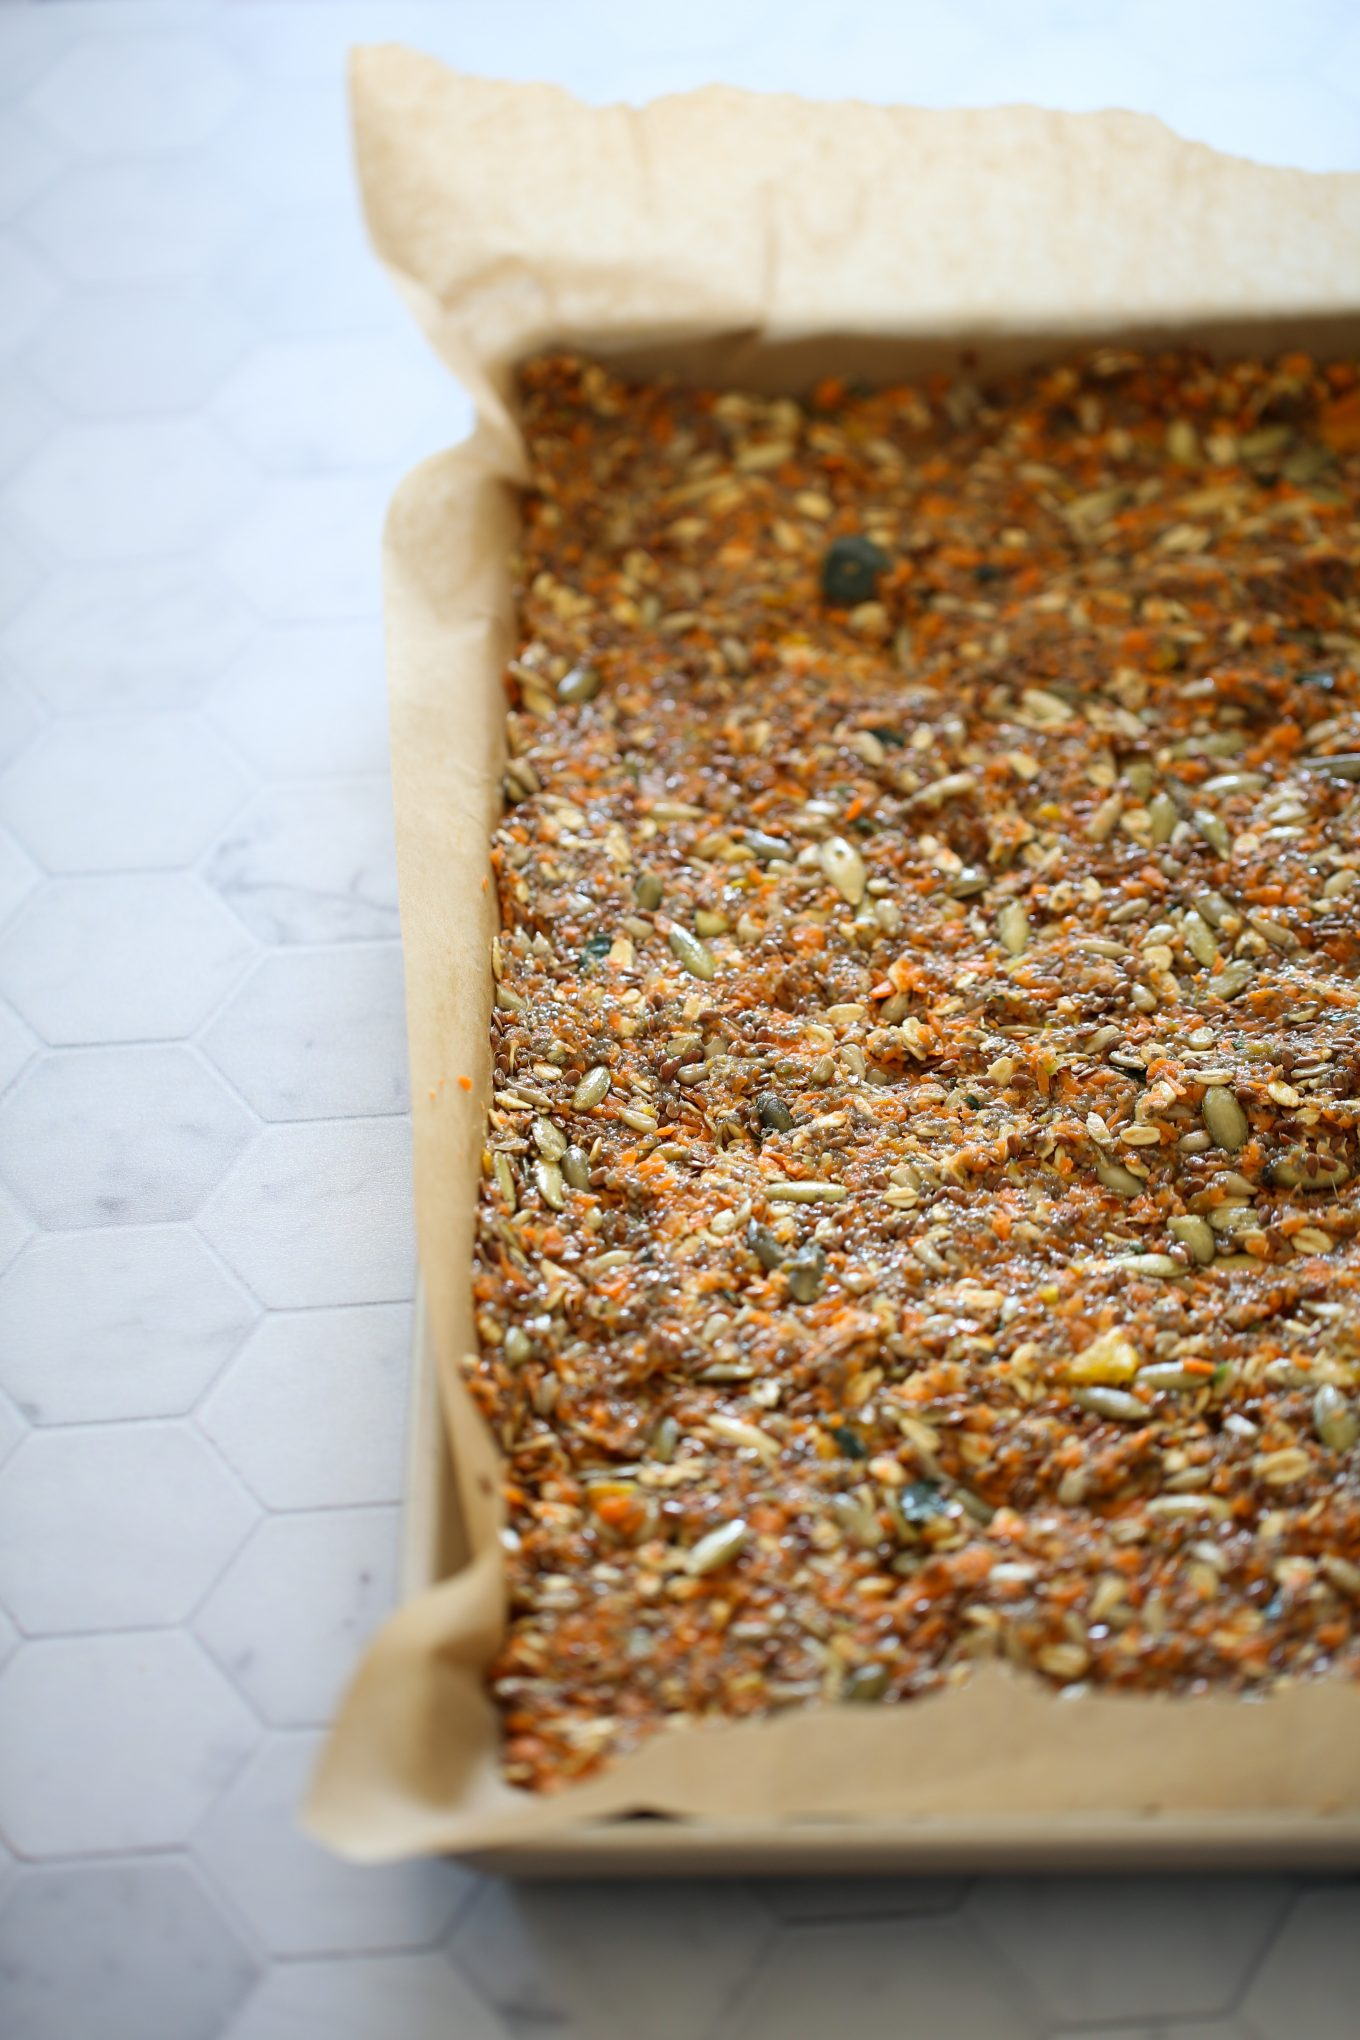 carrot juice crackers on a baking sheet before putting them in the oven